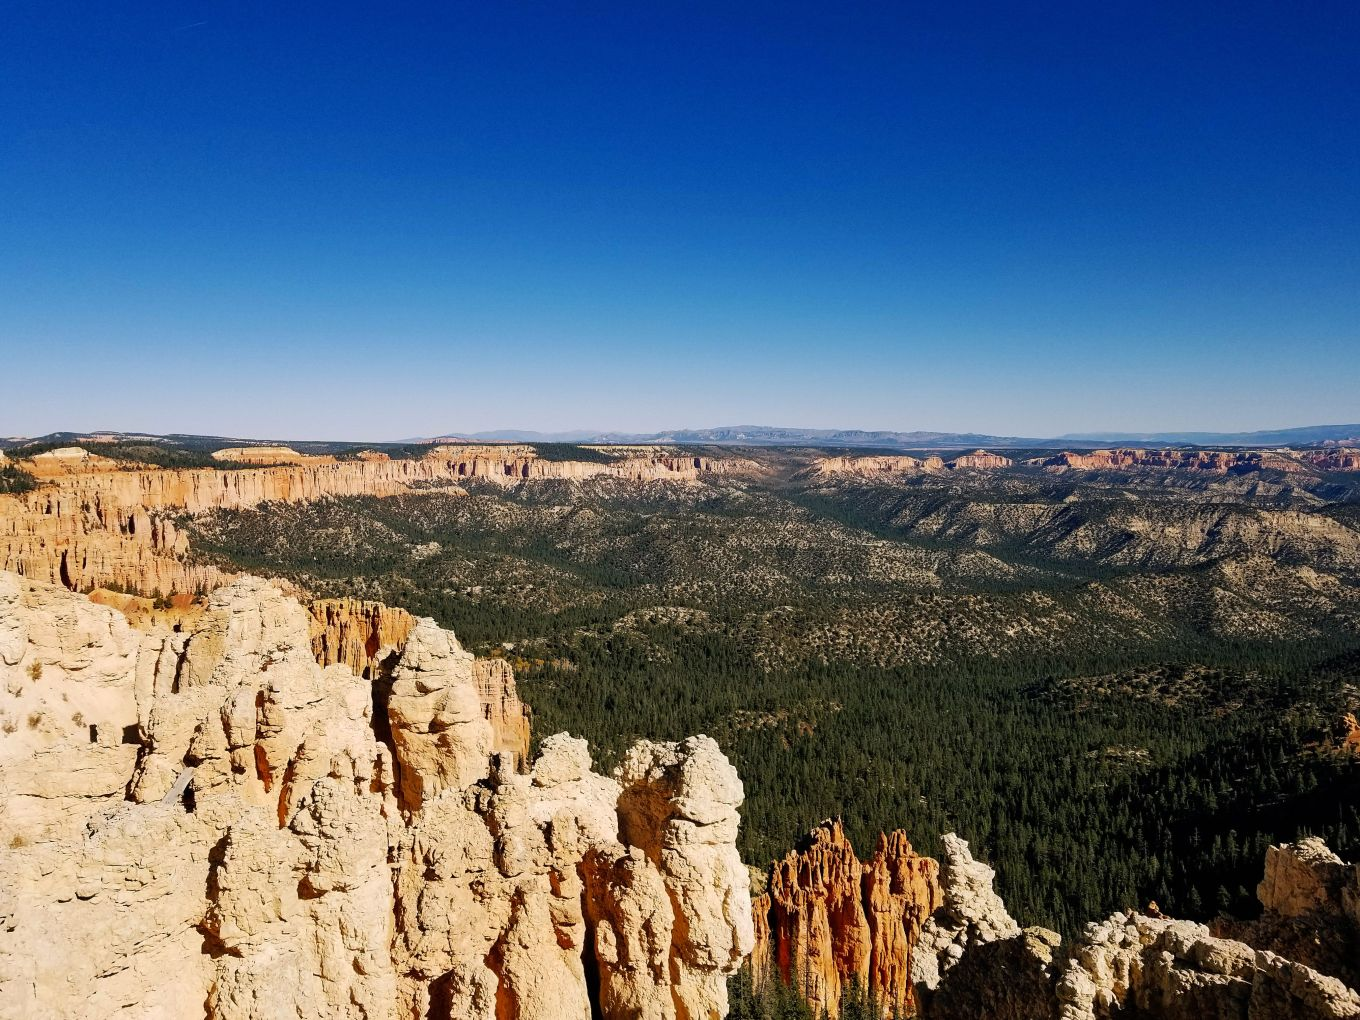 Bryce Amphitheater, Bryce Canyon National Park